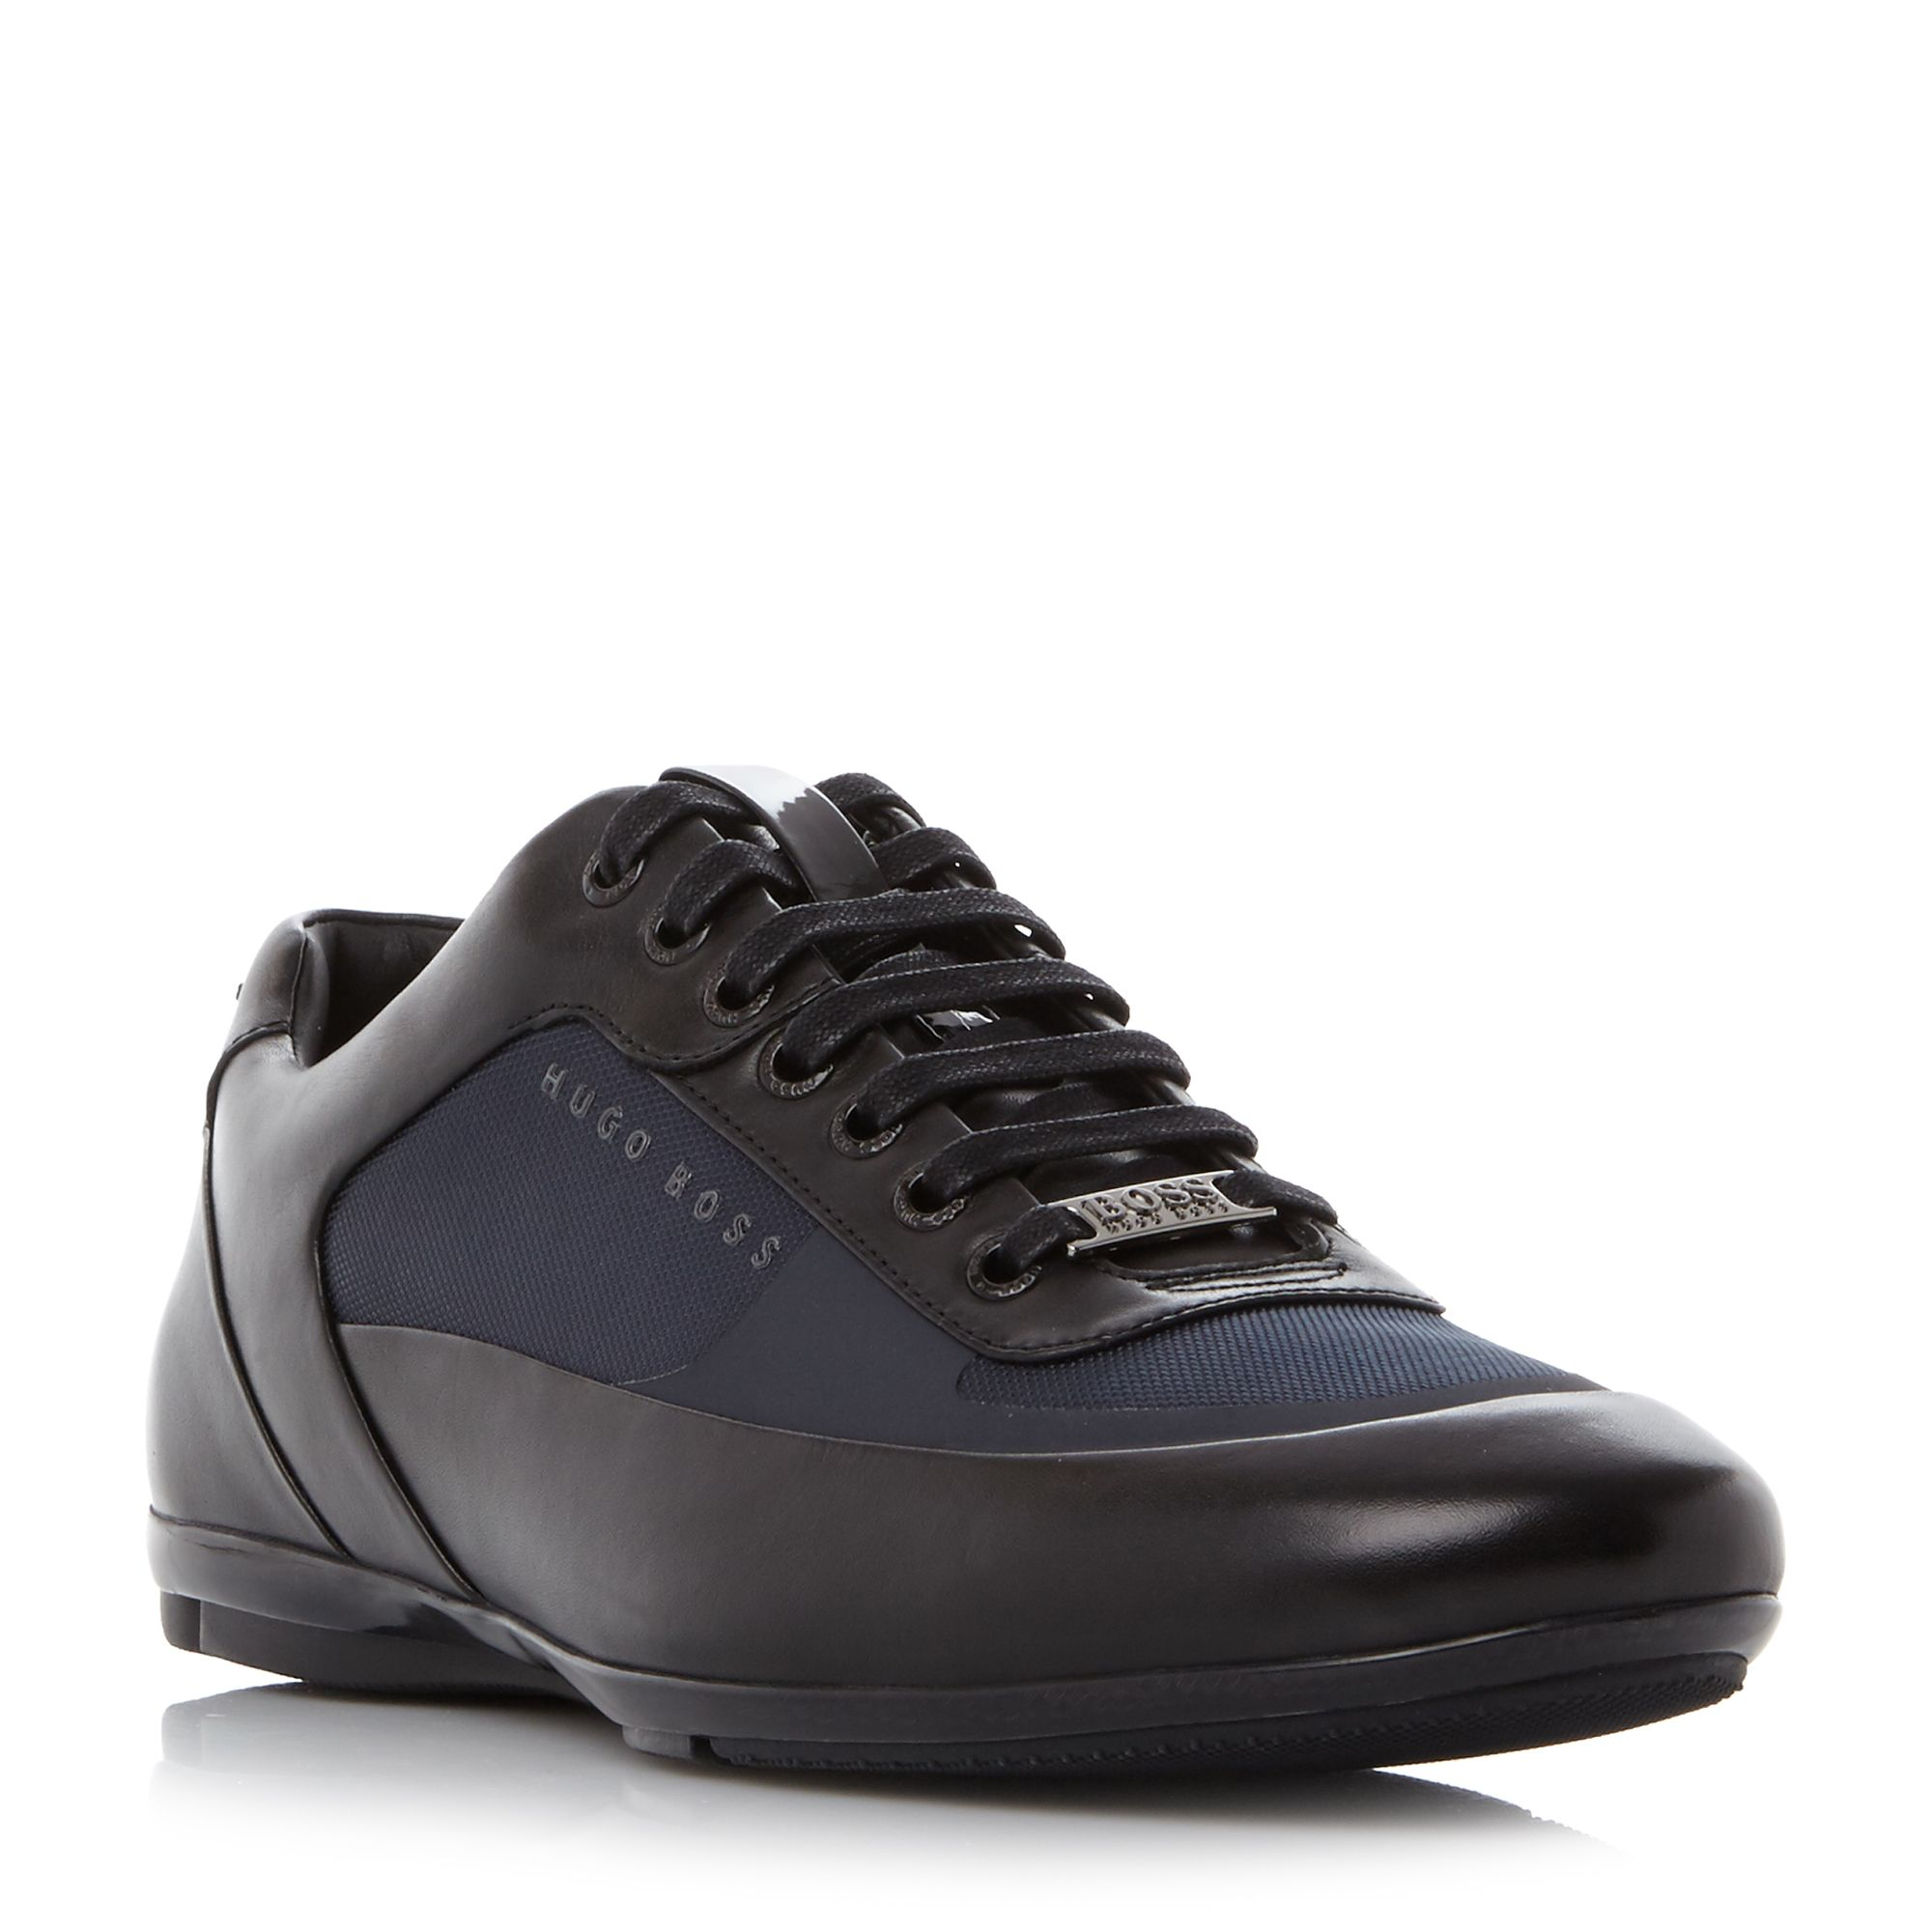 Hugo Boss Racing Mixed Material Lace Up Trainers Navy